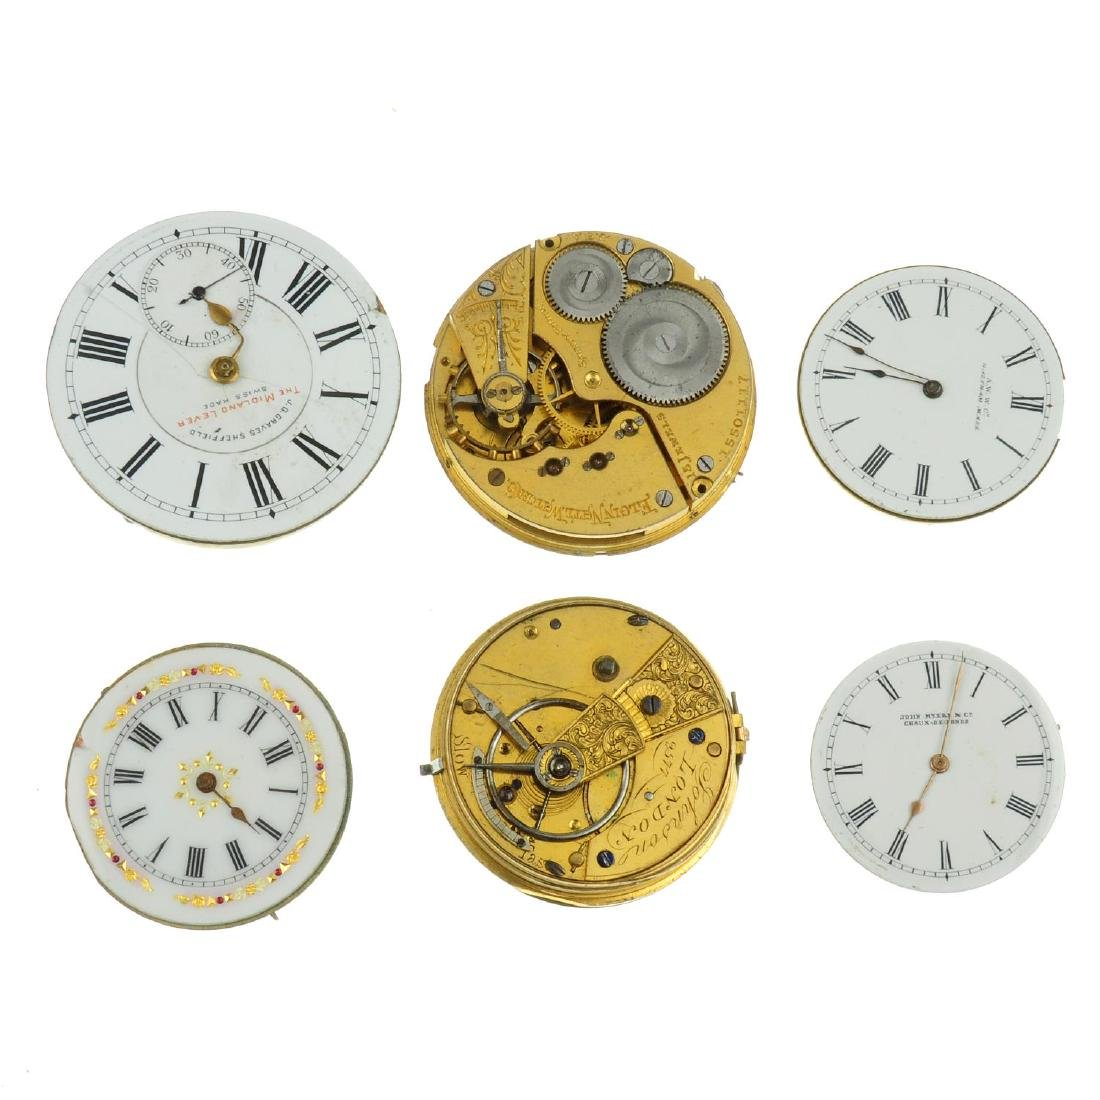 A bag of assorted pocket watch movements. All